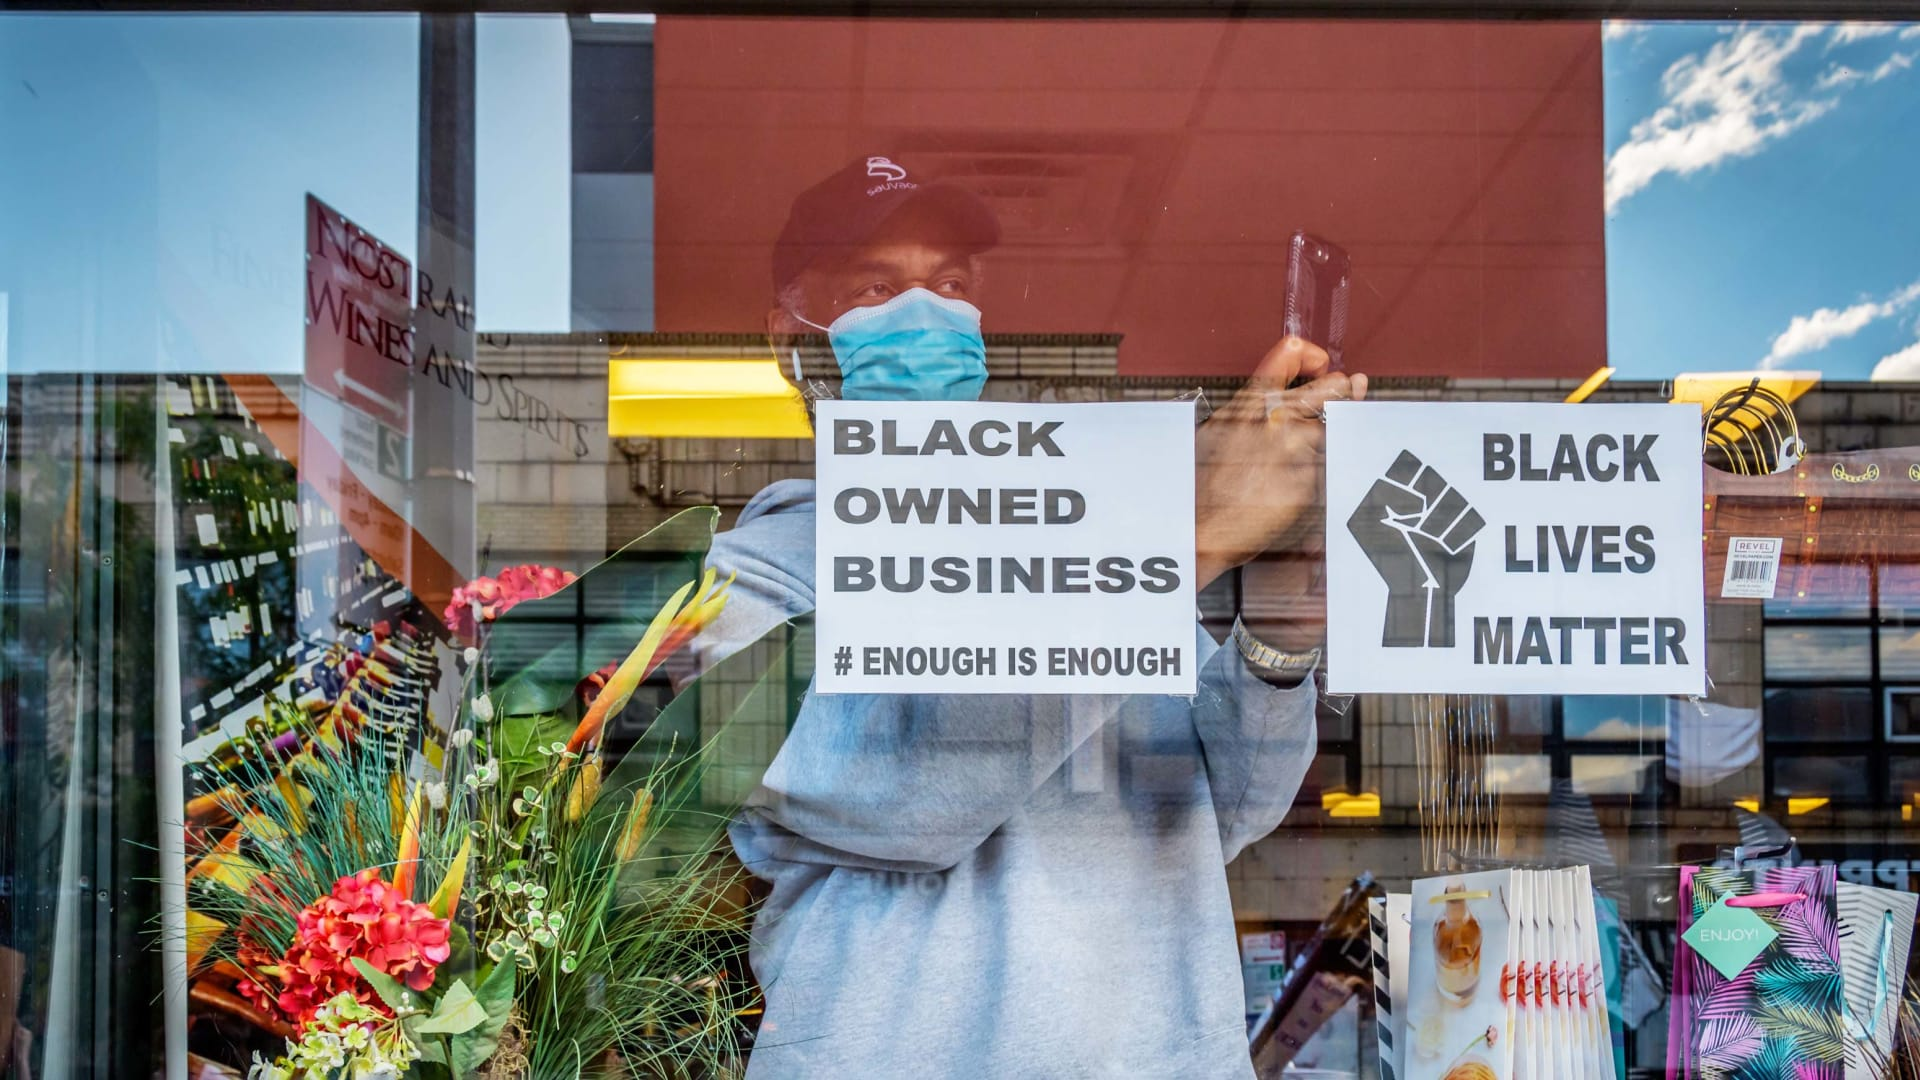 What Black Business Owners Need Most Right Now, According to Black Business Owners